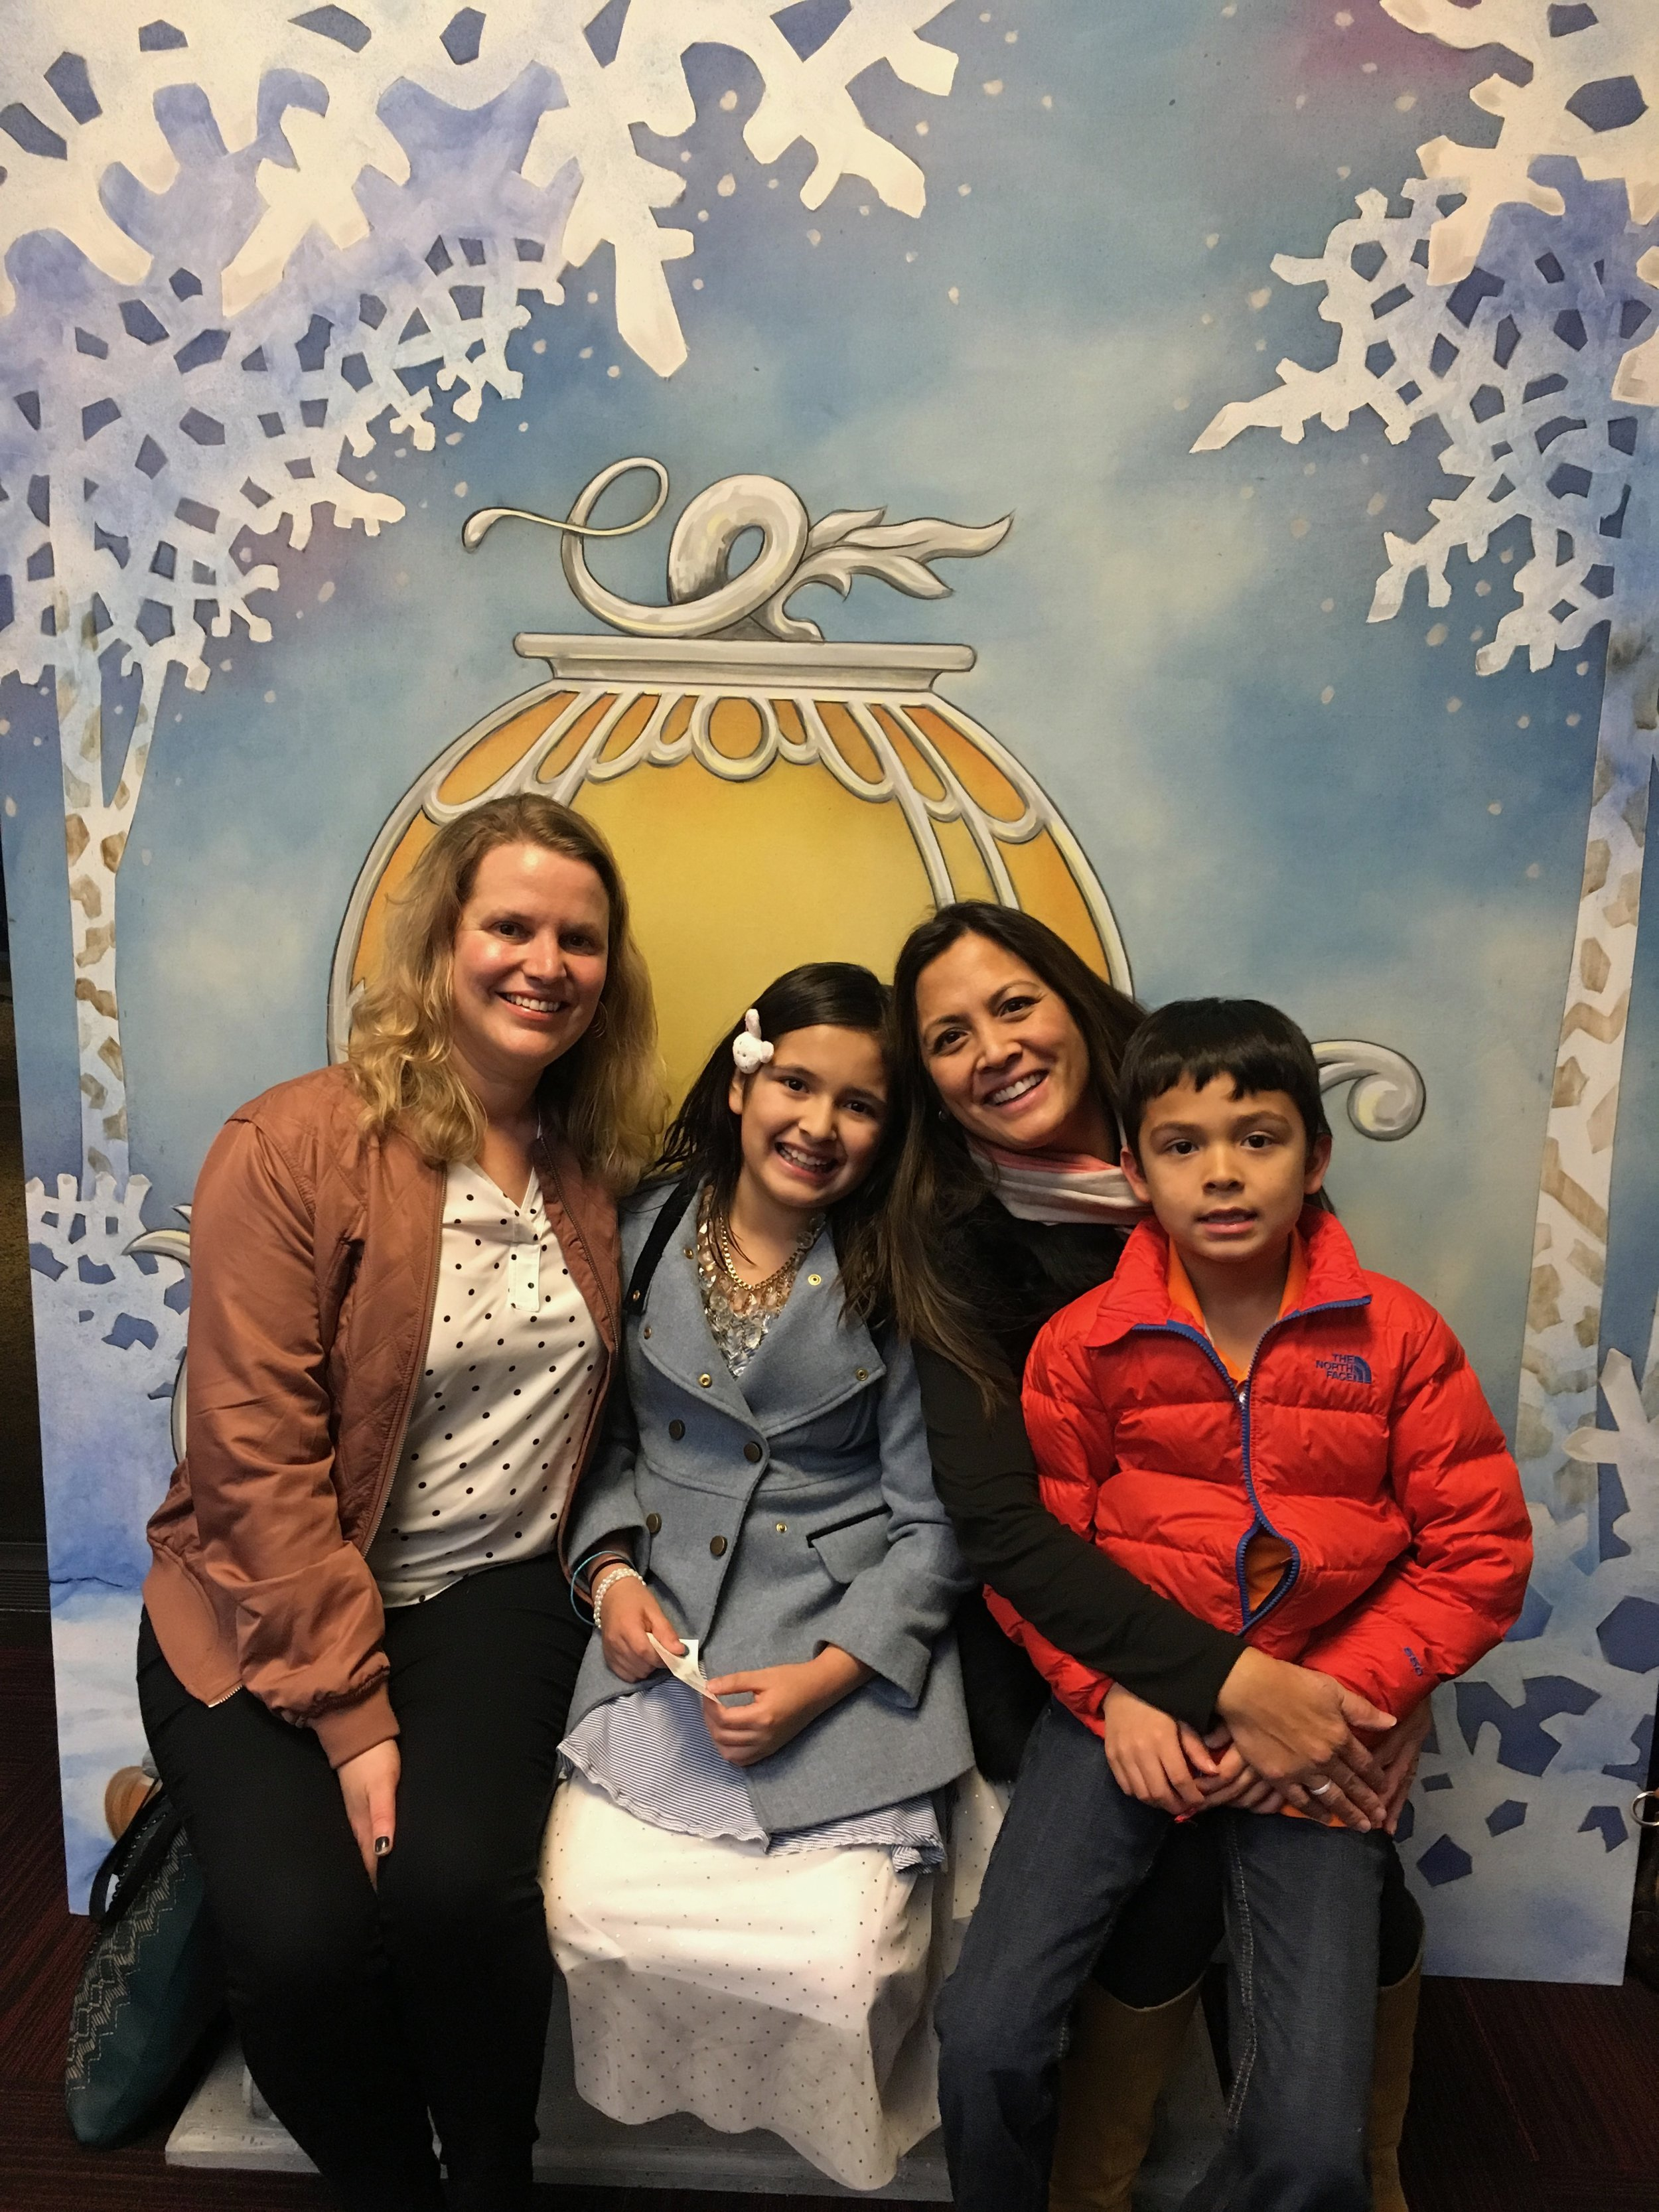 Enjoyed the Cinderella play with the youngest of the sibling foursome, Camille.